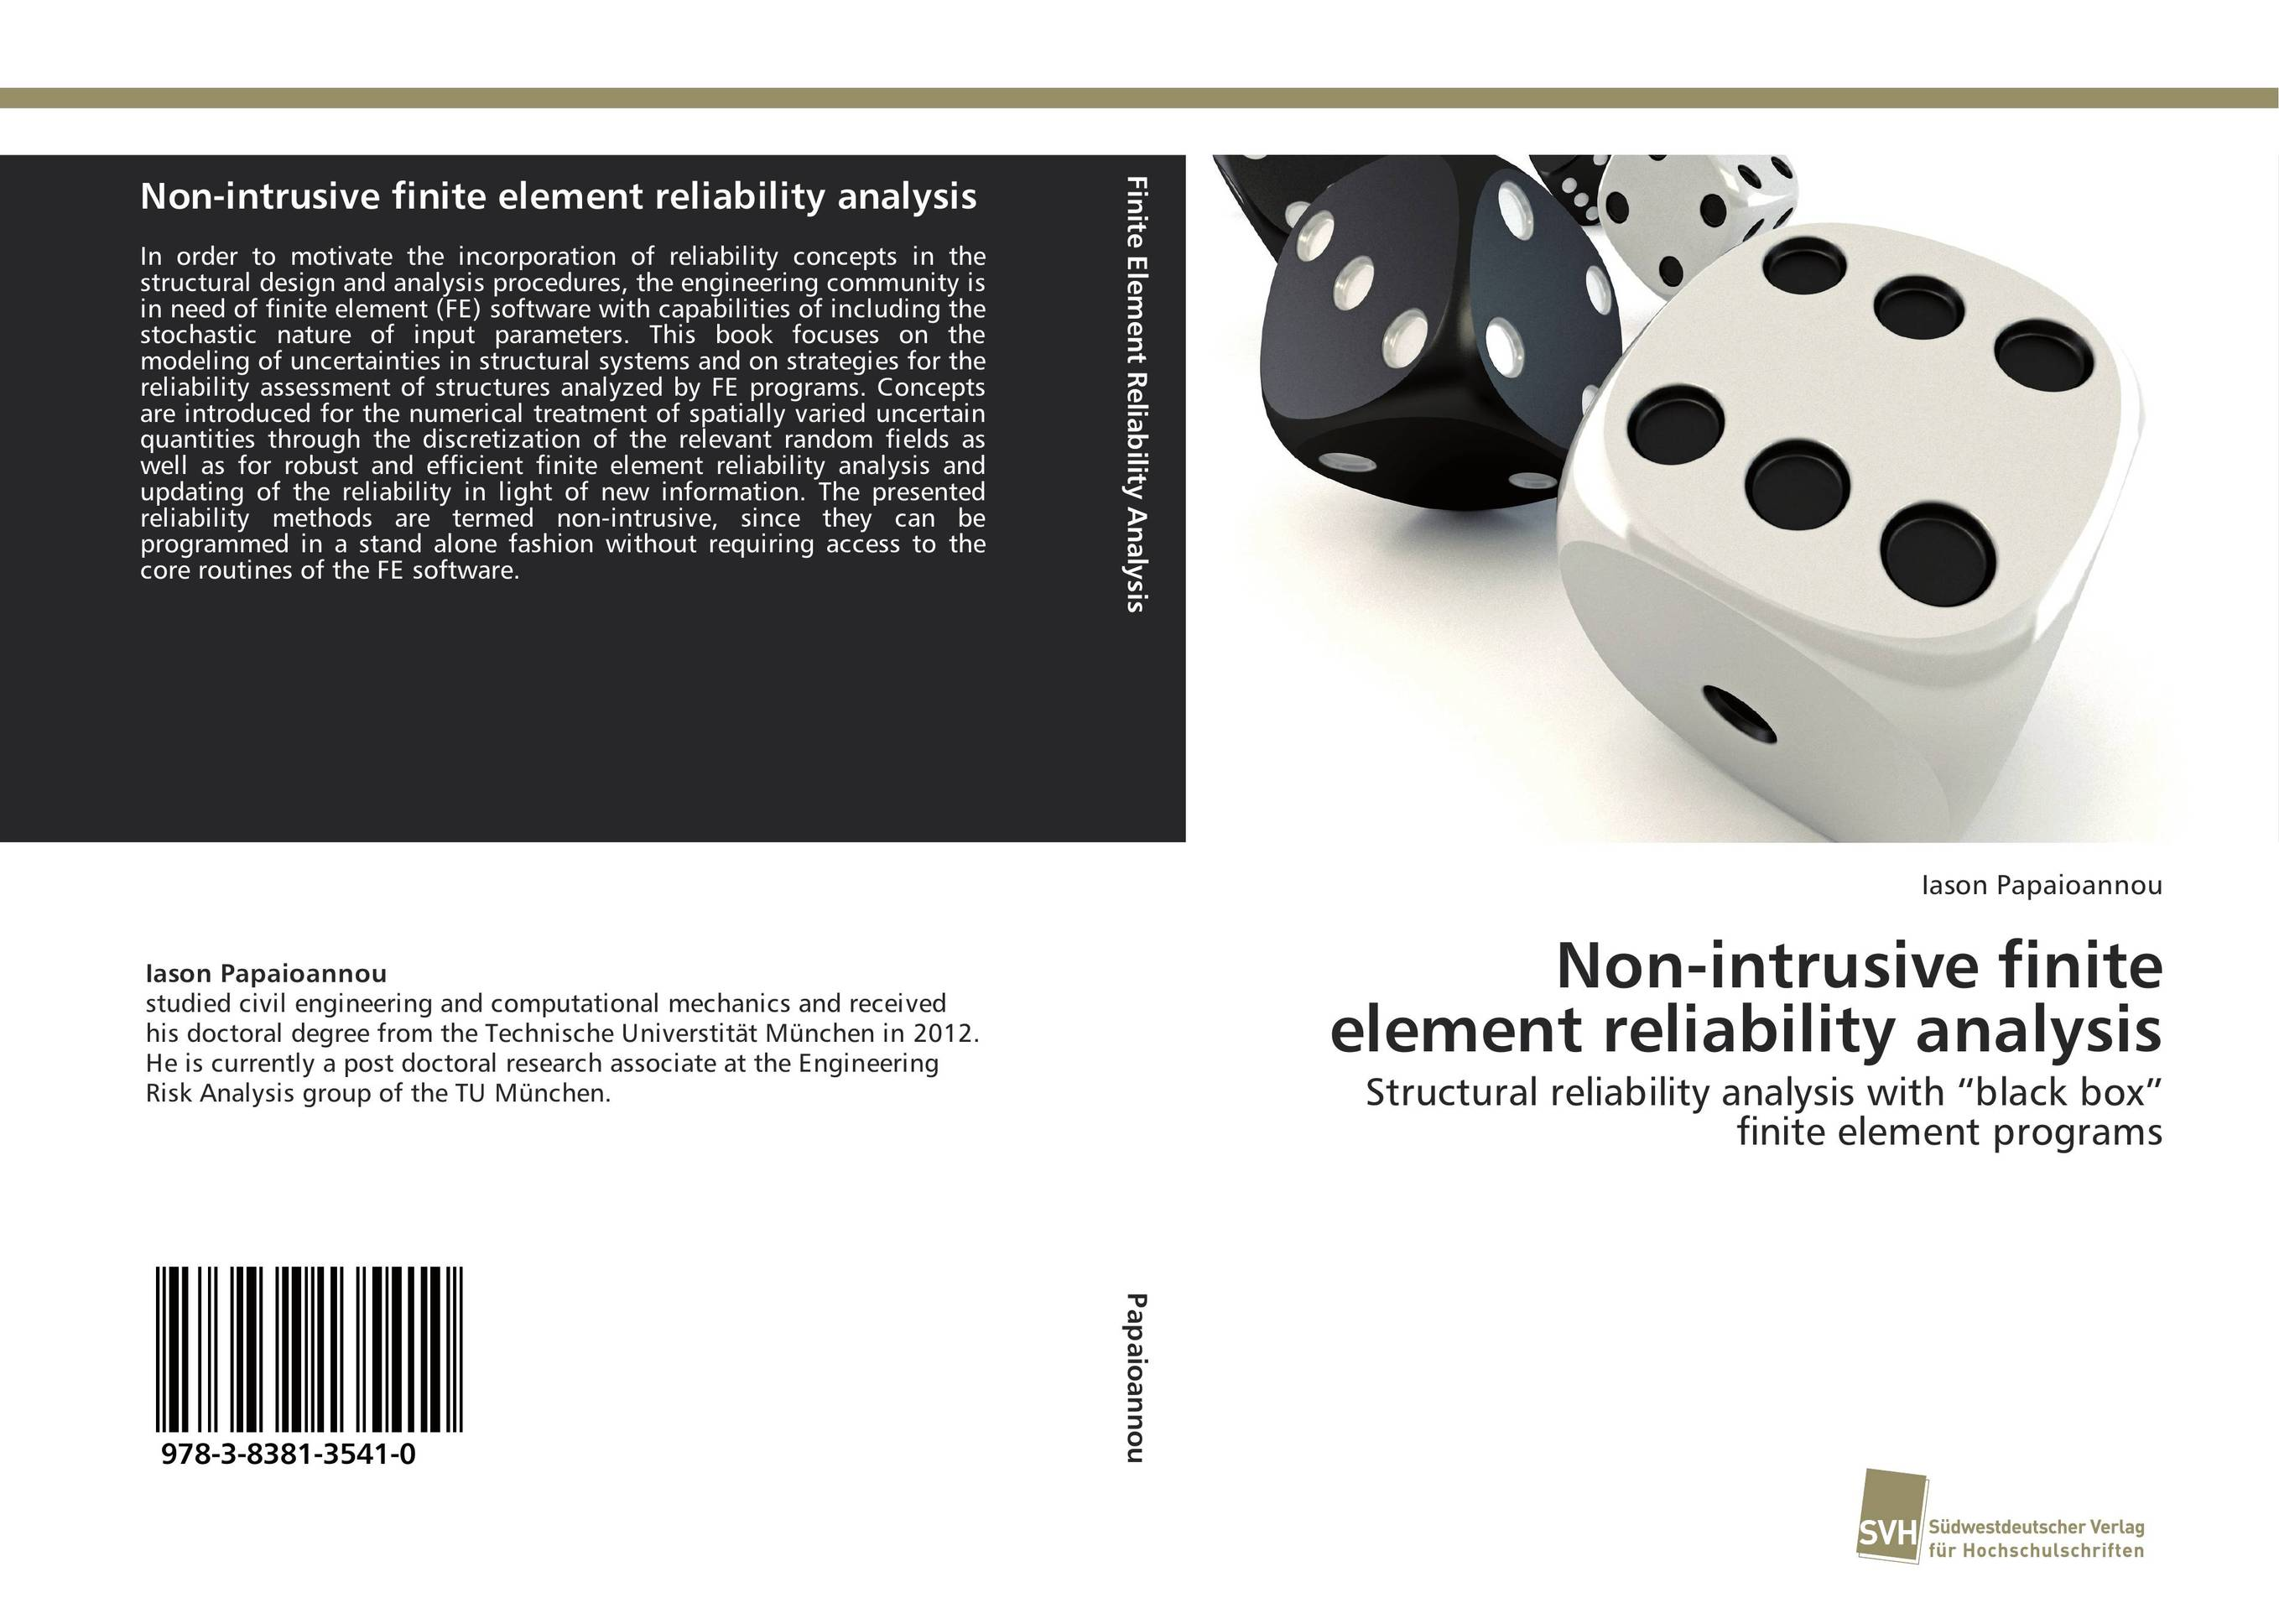 Non-intrusive finite element reliability analysis rd cook cook concepts and applications of finite element analysis 2ed